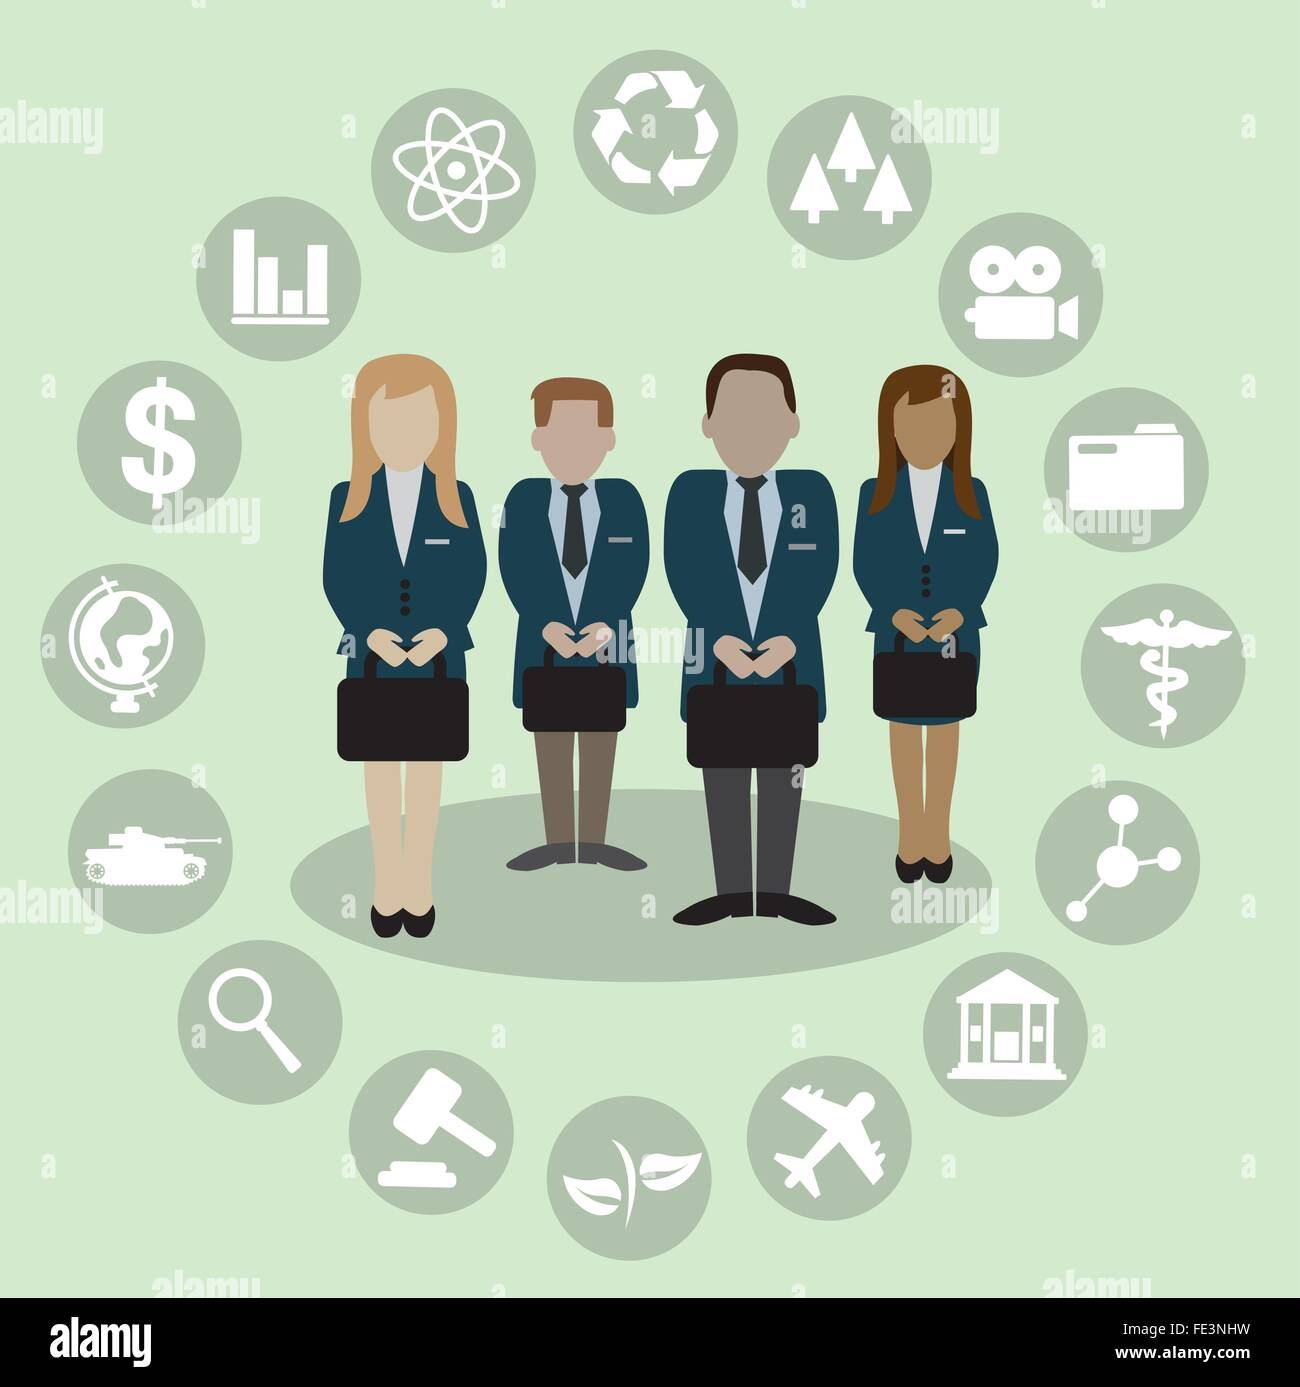 Human Resources with professional occupation - Stock Vector